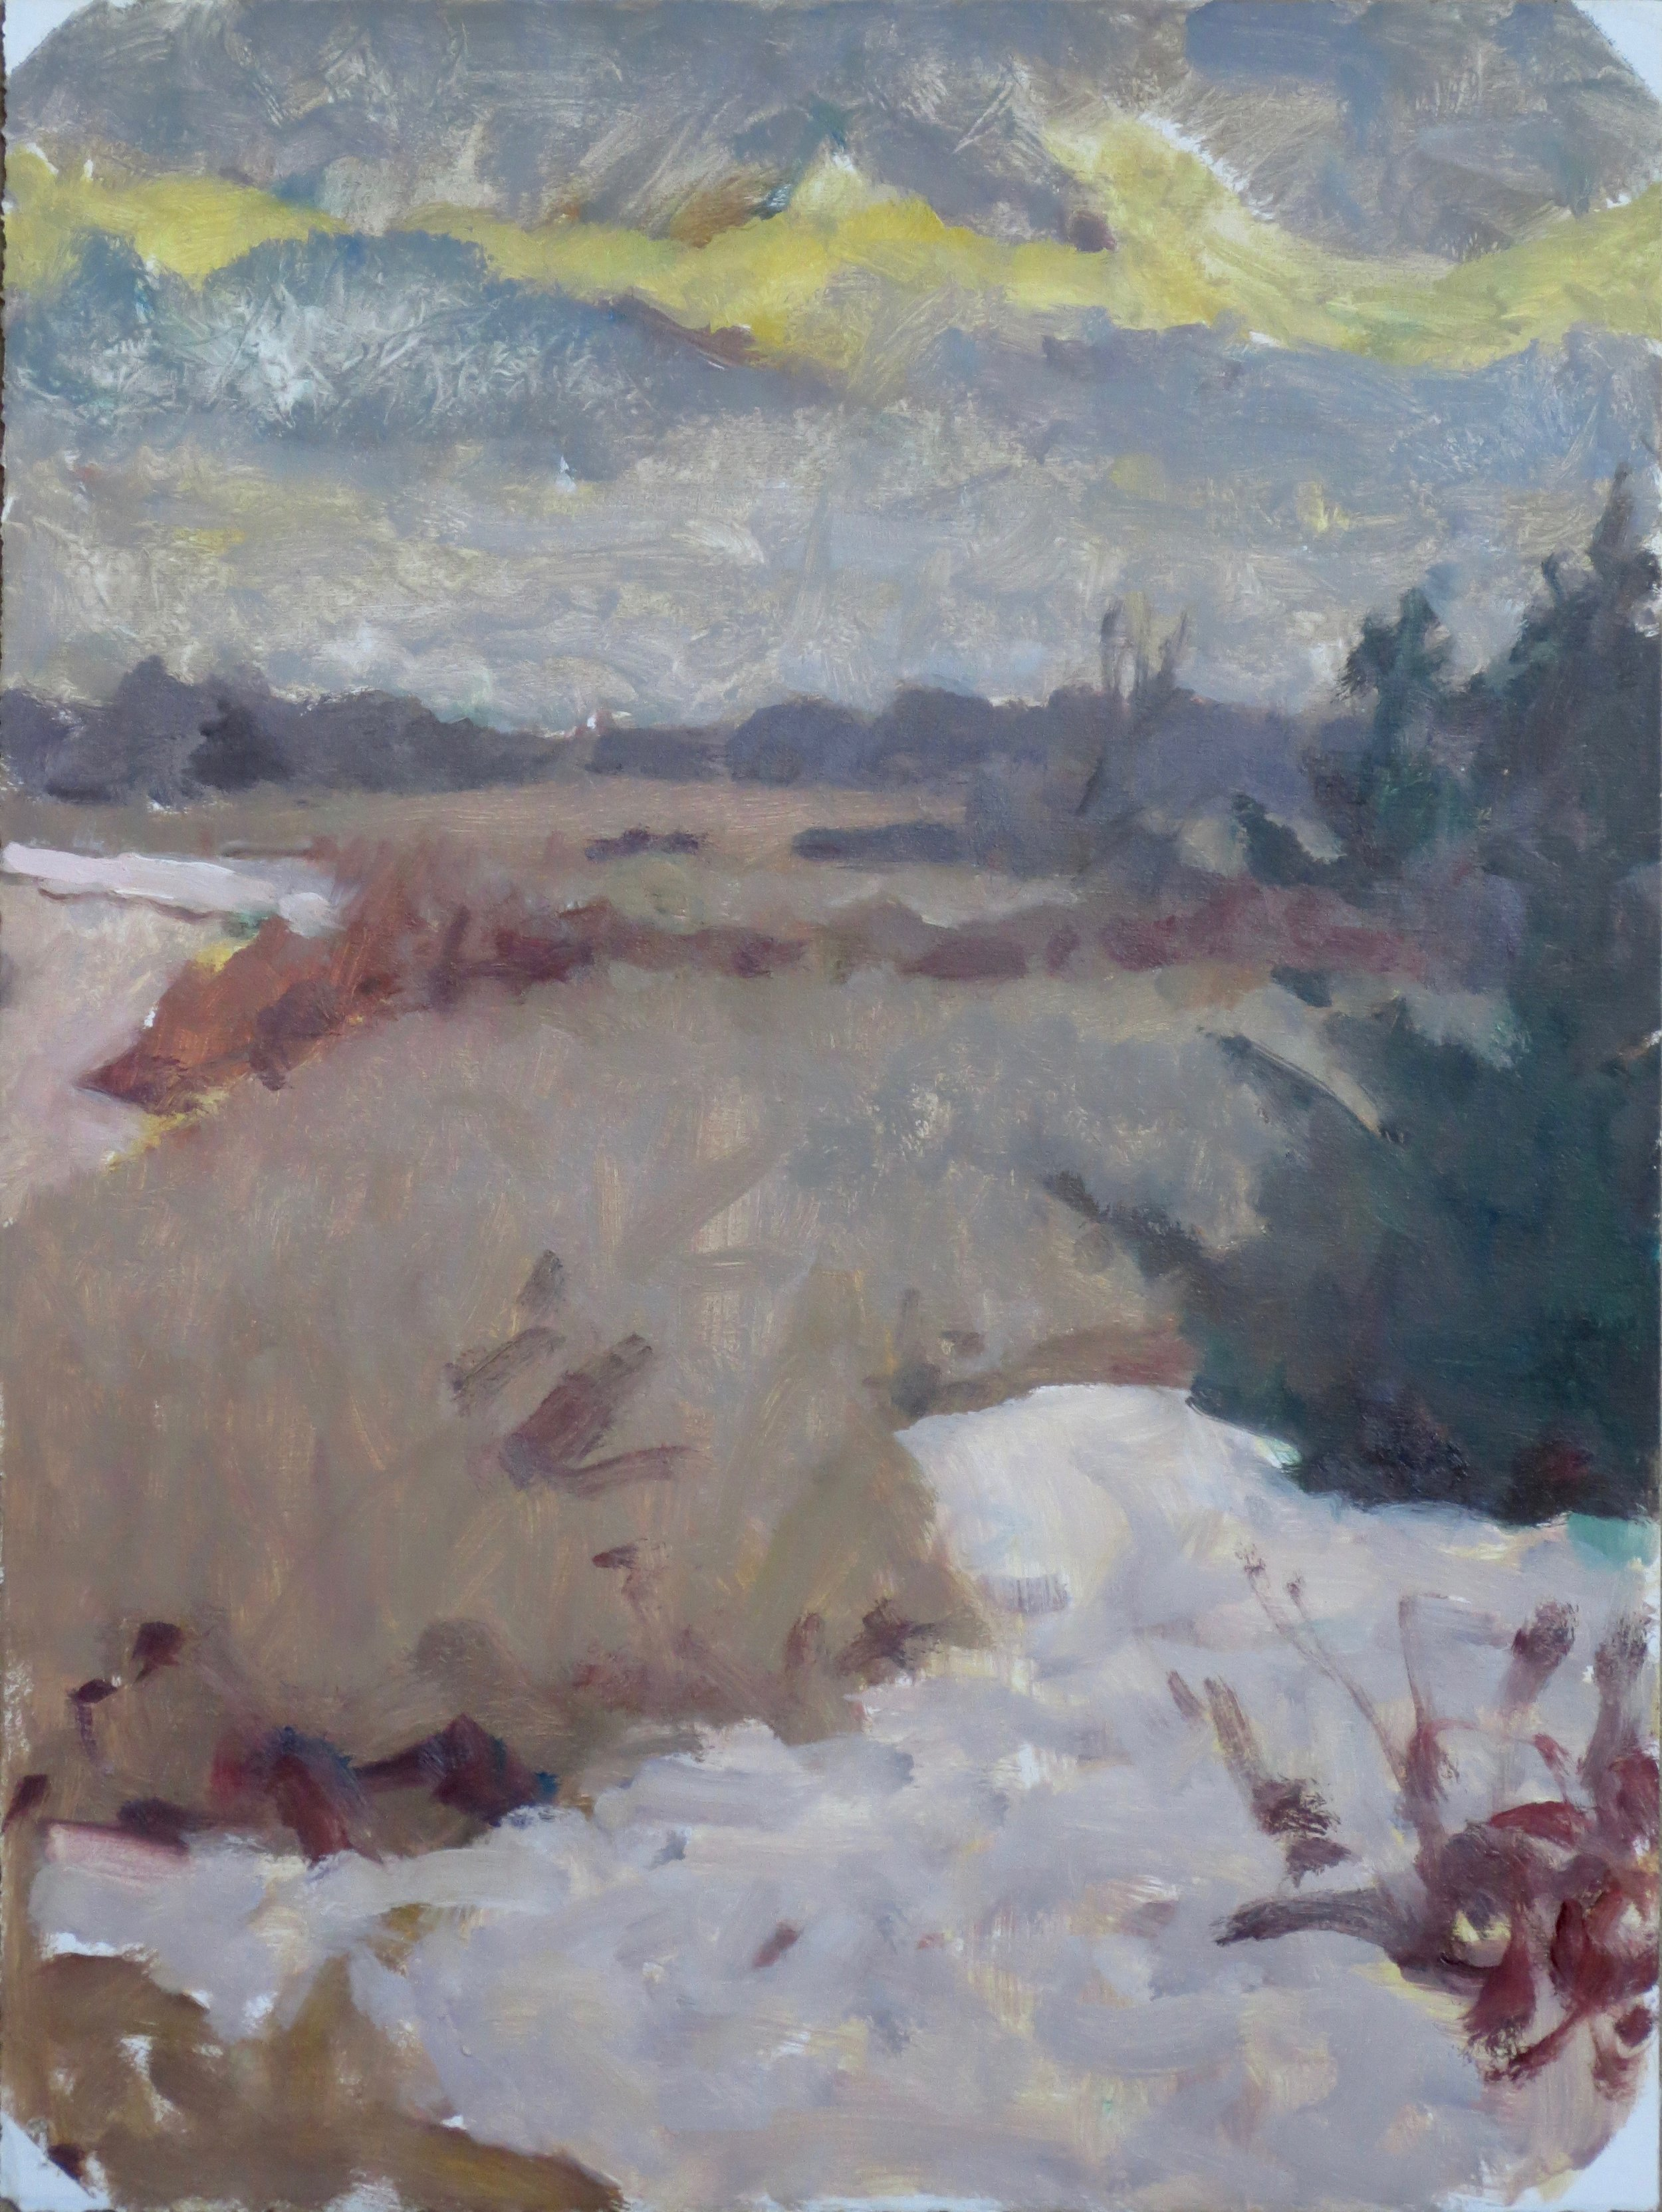 Winter, late afternoon, 2016